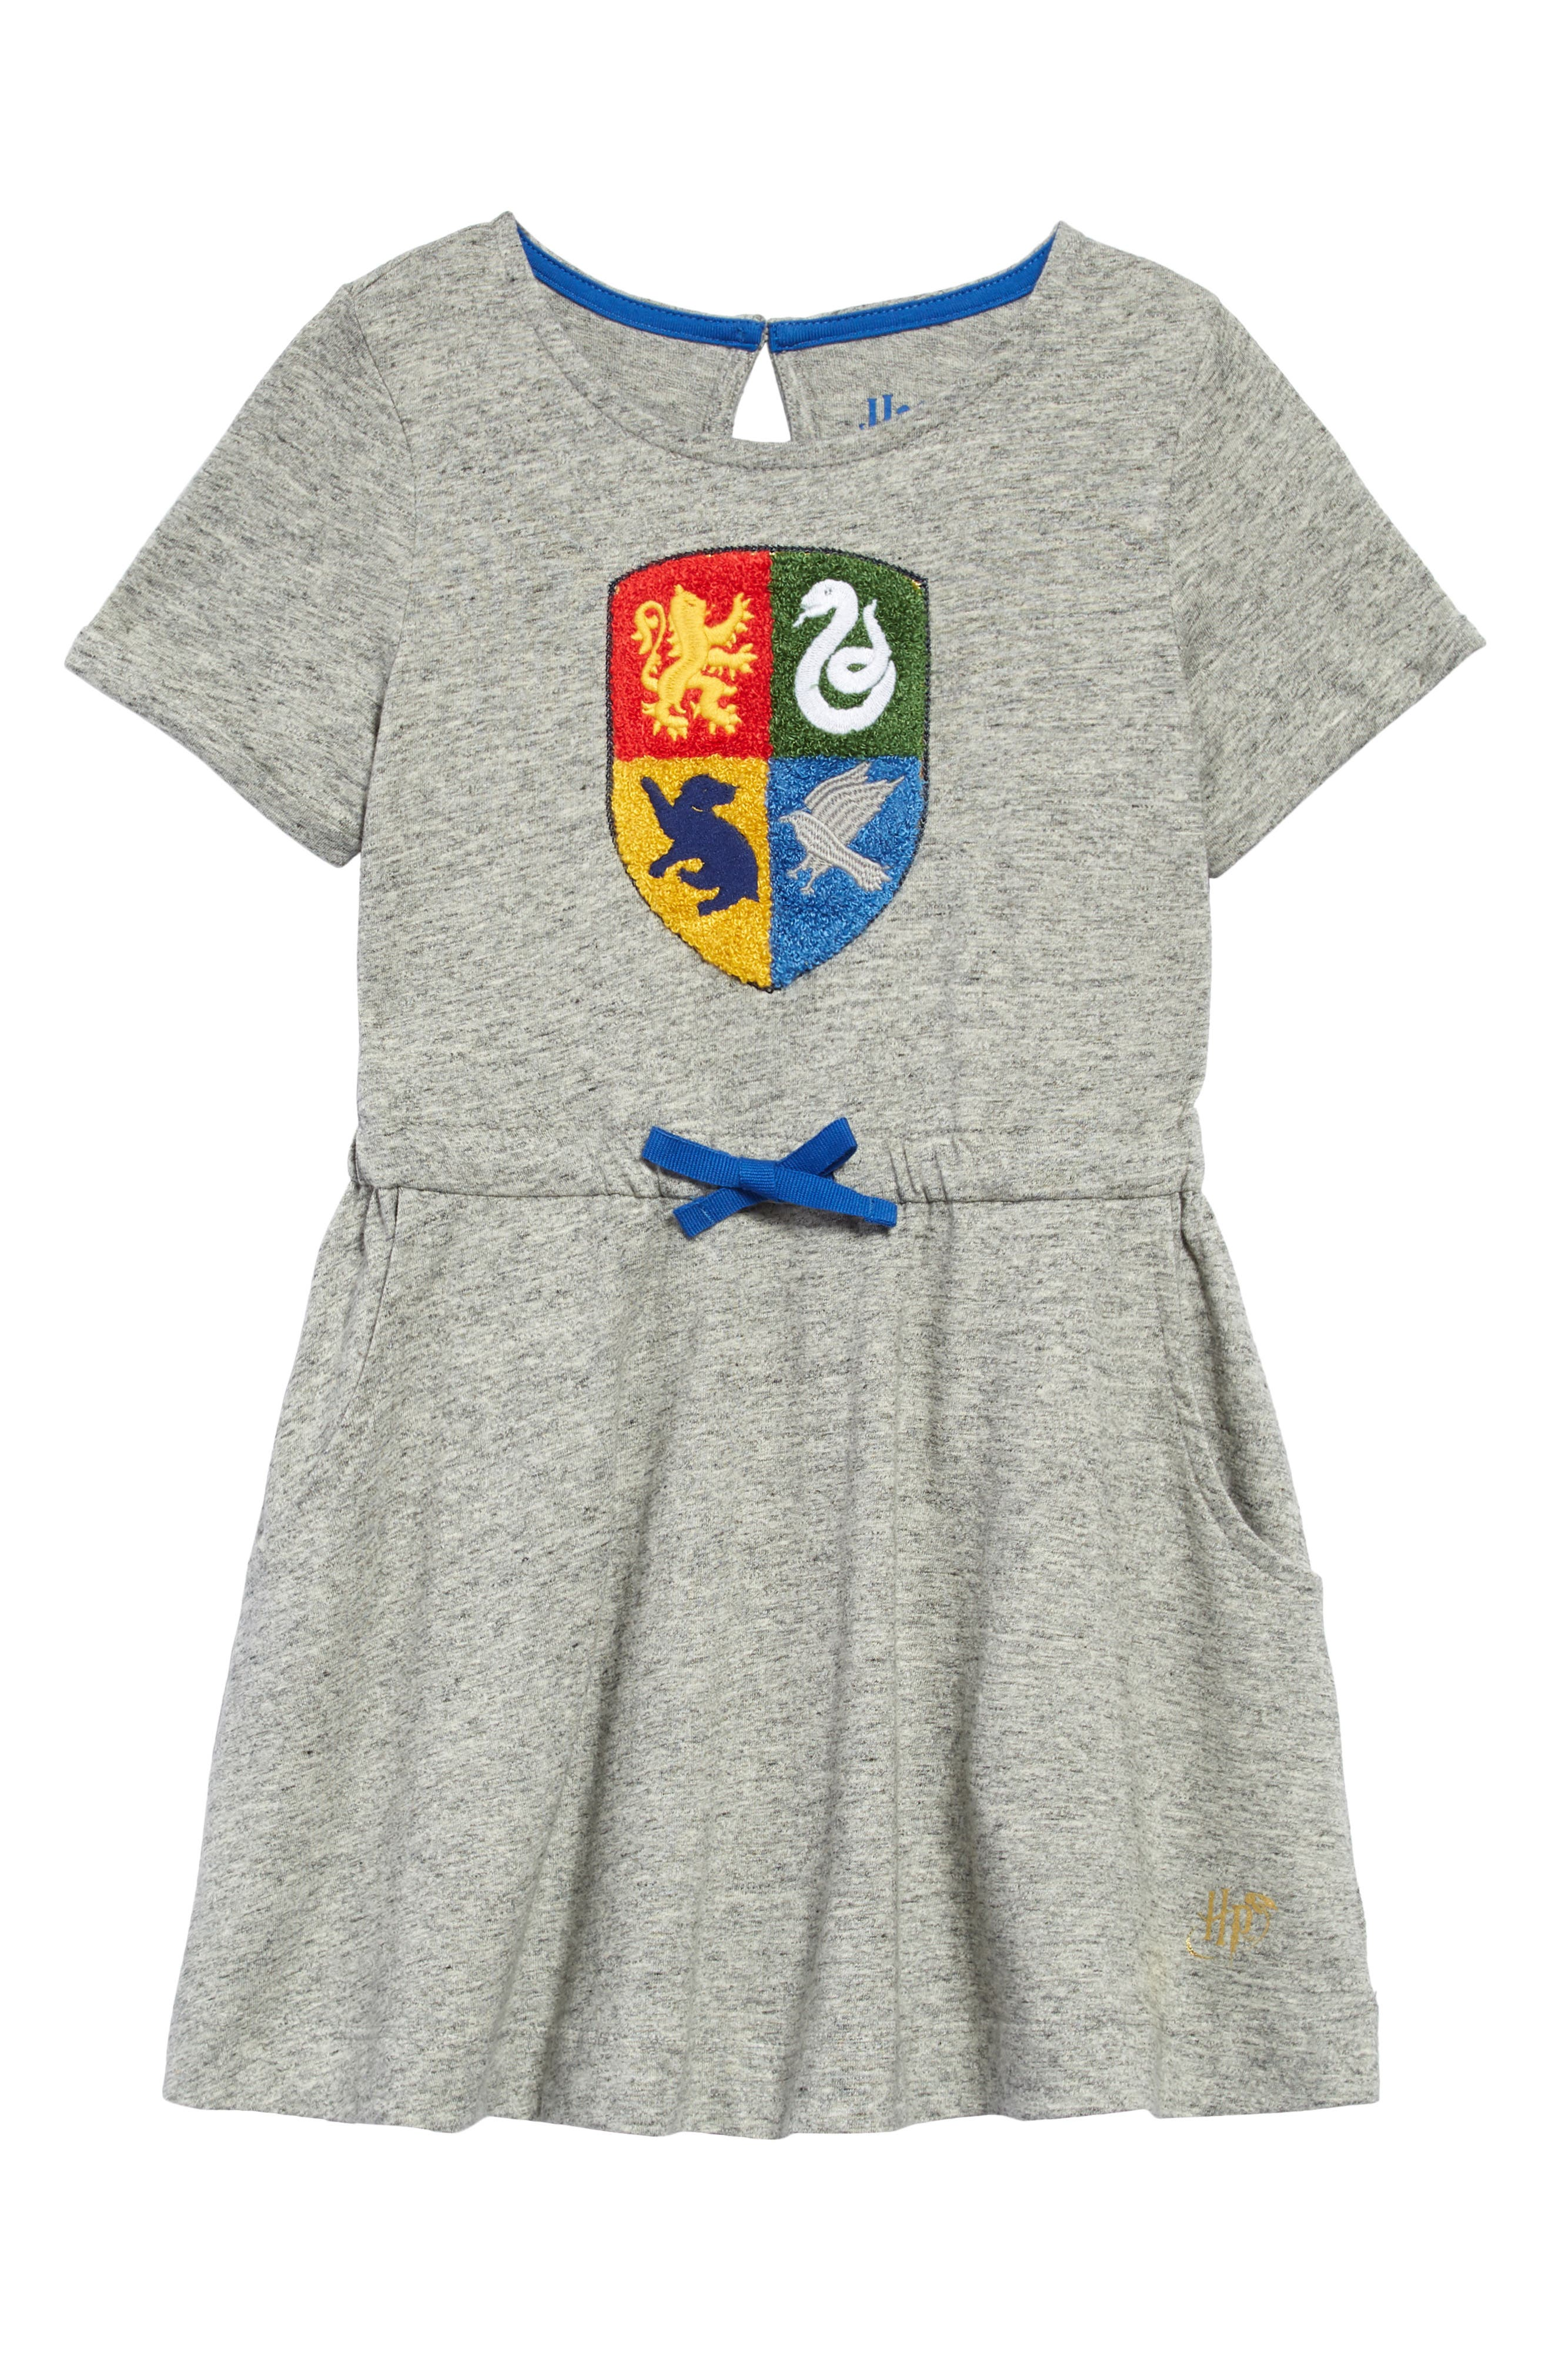 Your future wizard won\\\'t have to choose which house to belong in with this fun crested dress cut from pure cotton jersey that\\\'s perfect for lounging or play. Style Name: Mini Boden X Harry Potter Hogwarts Crest Dress. Style Number: 6050504. Available in stores.